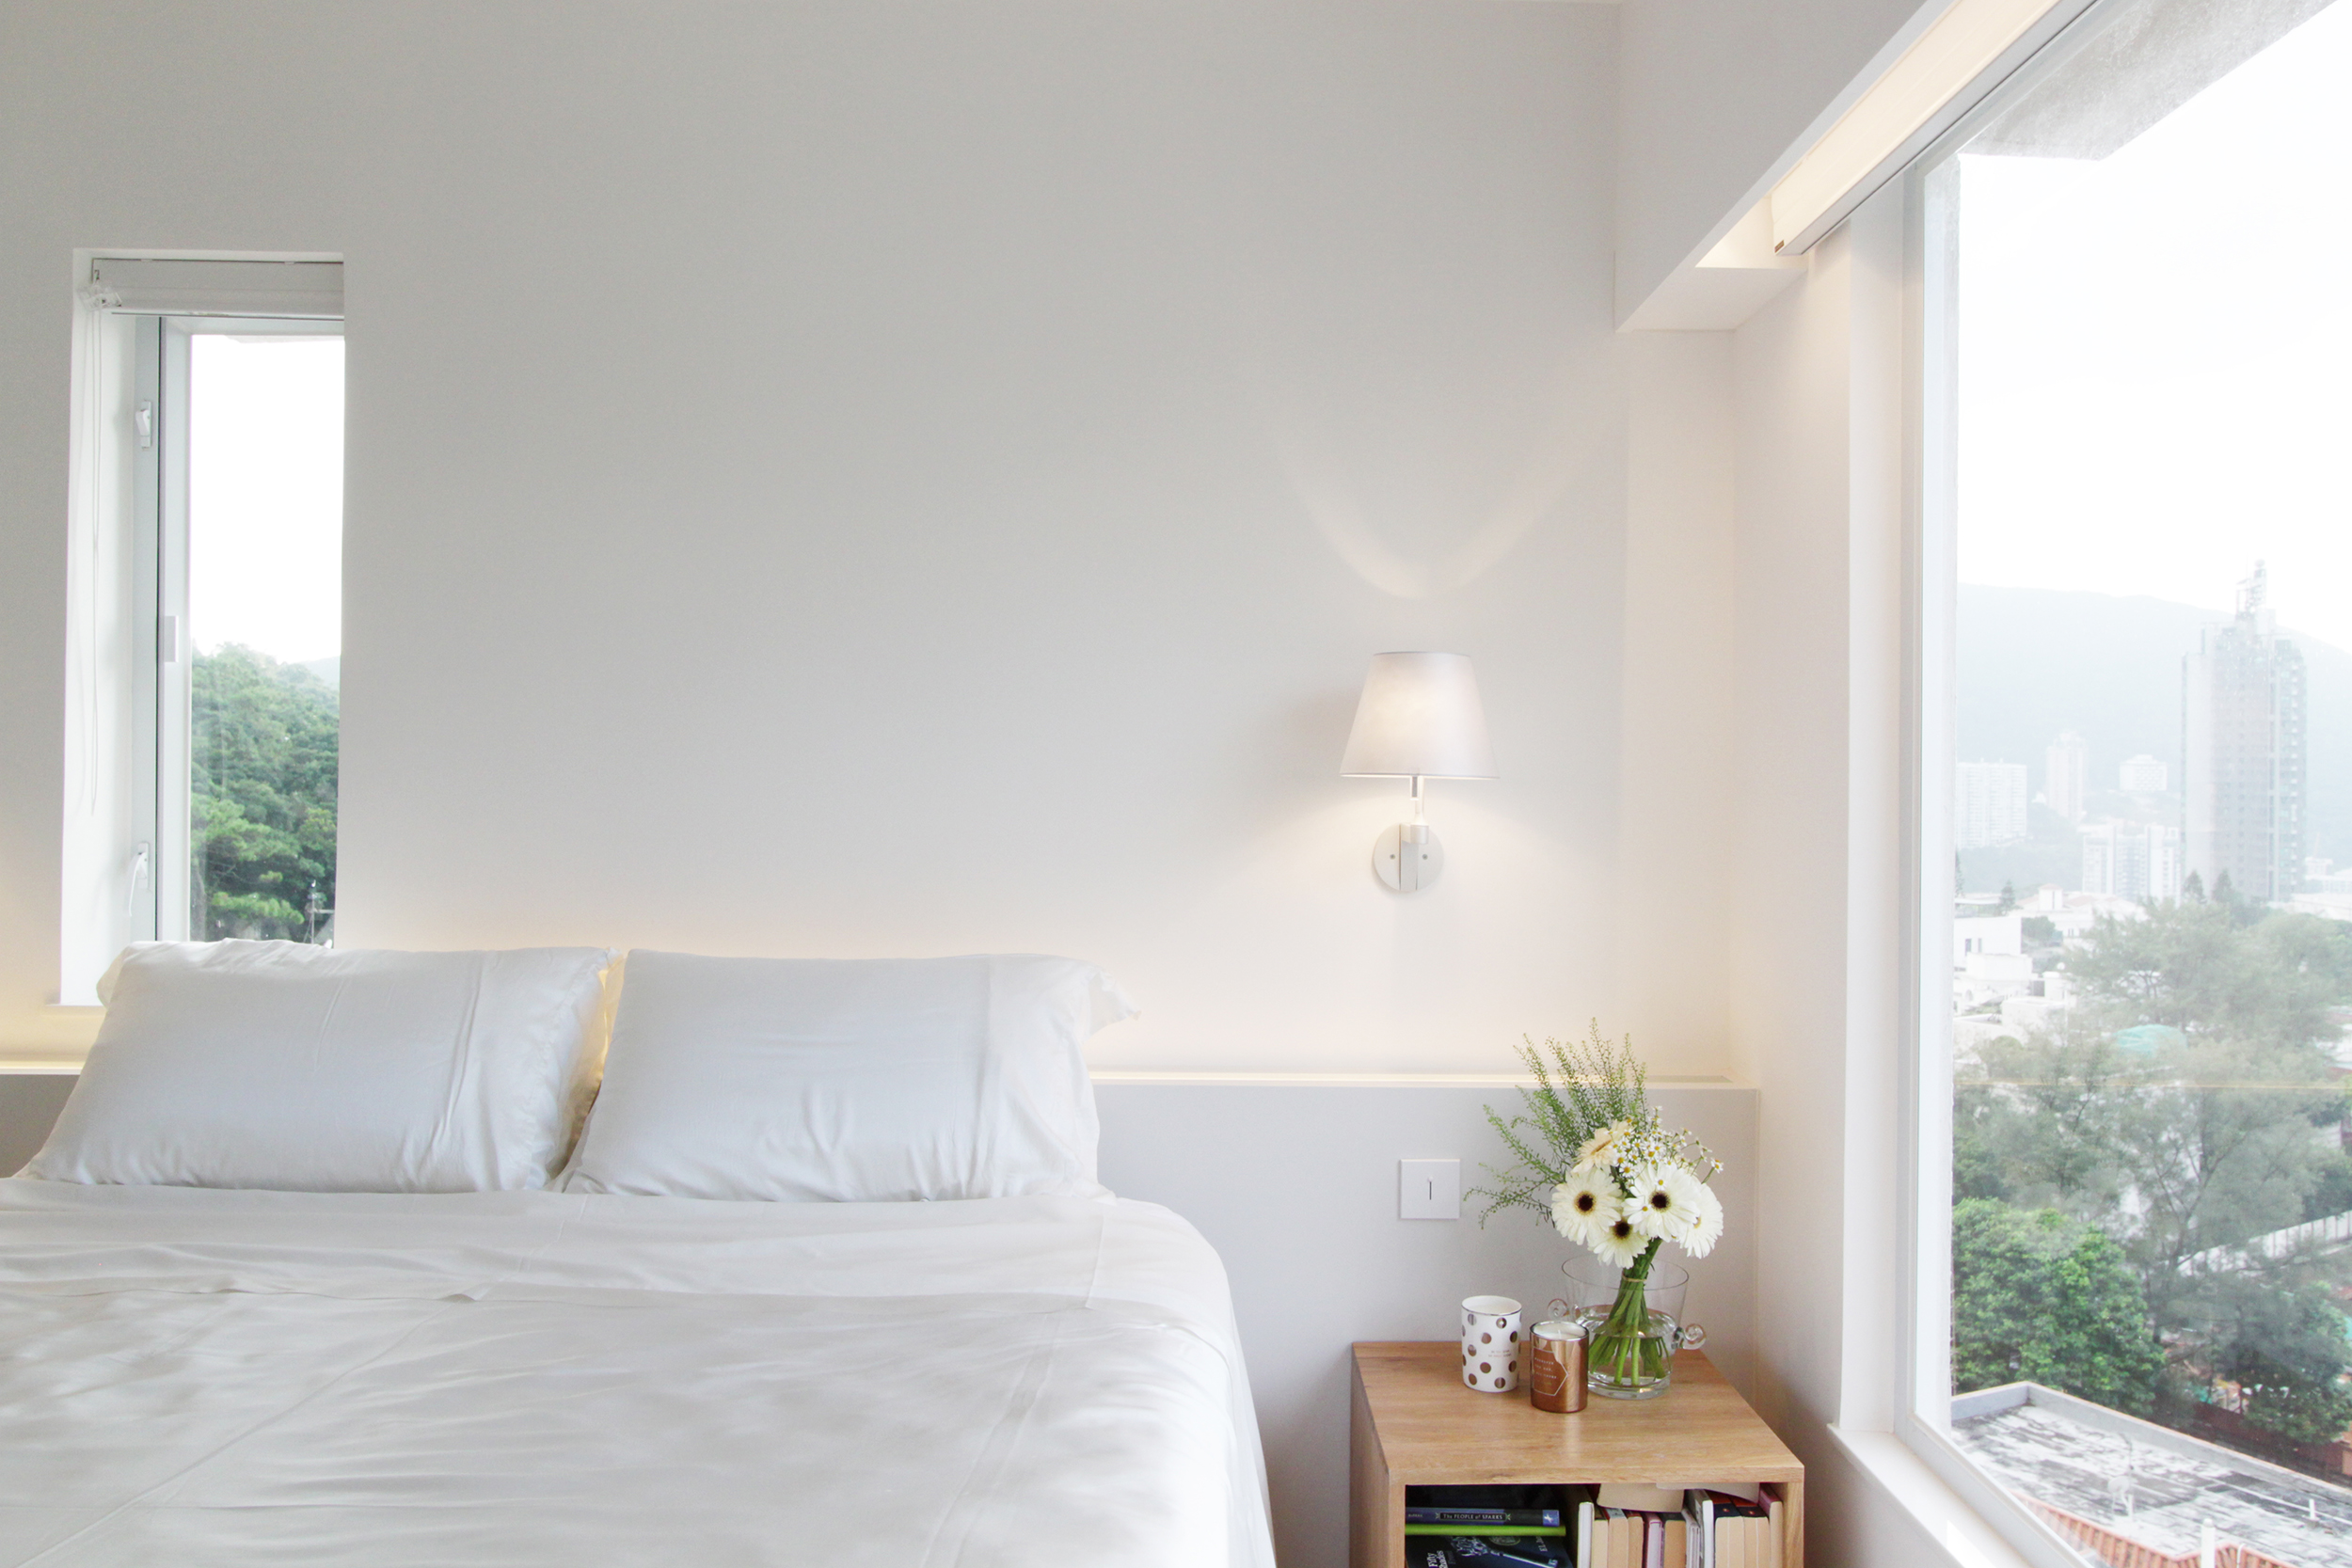 Master Bedroom | Headboard with integrated uplight and dimmable wall-lights help create a relaxing and zen ambiance as night falls. Large windows framing the views of Jardine's Lookout and the harbour.